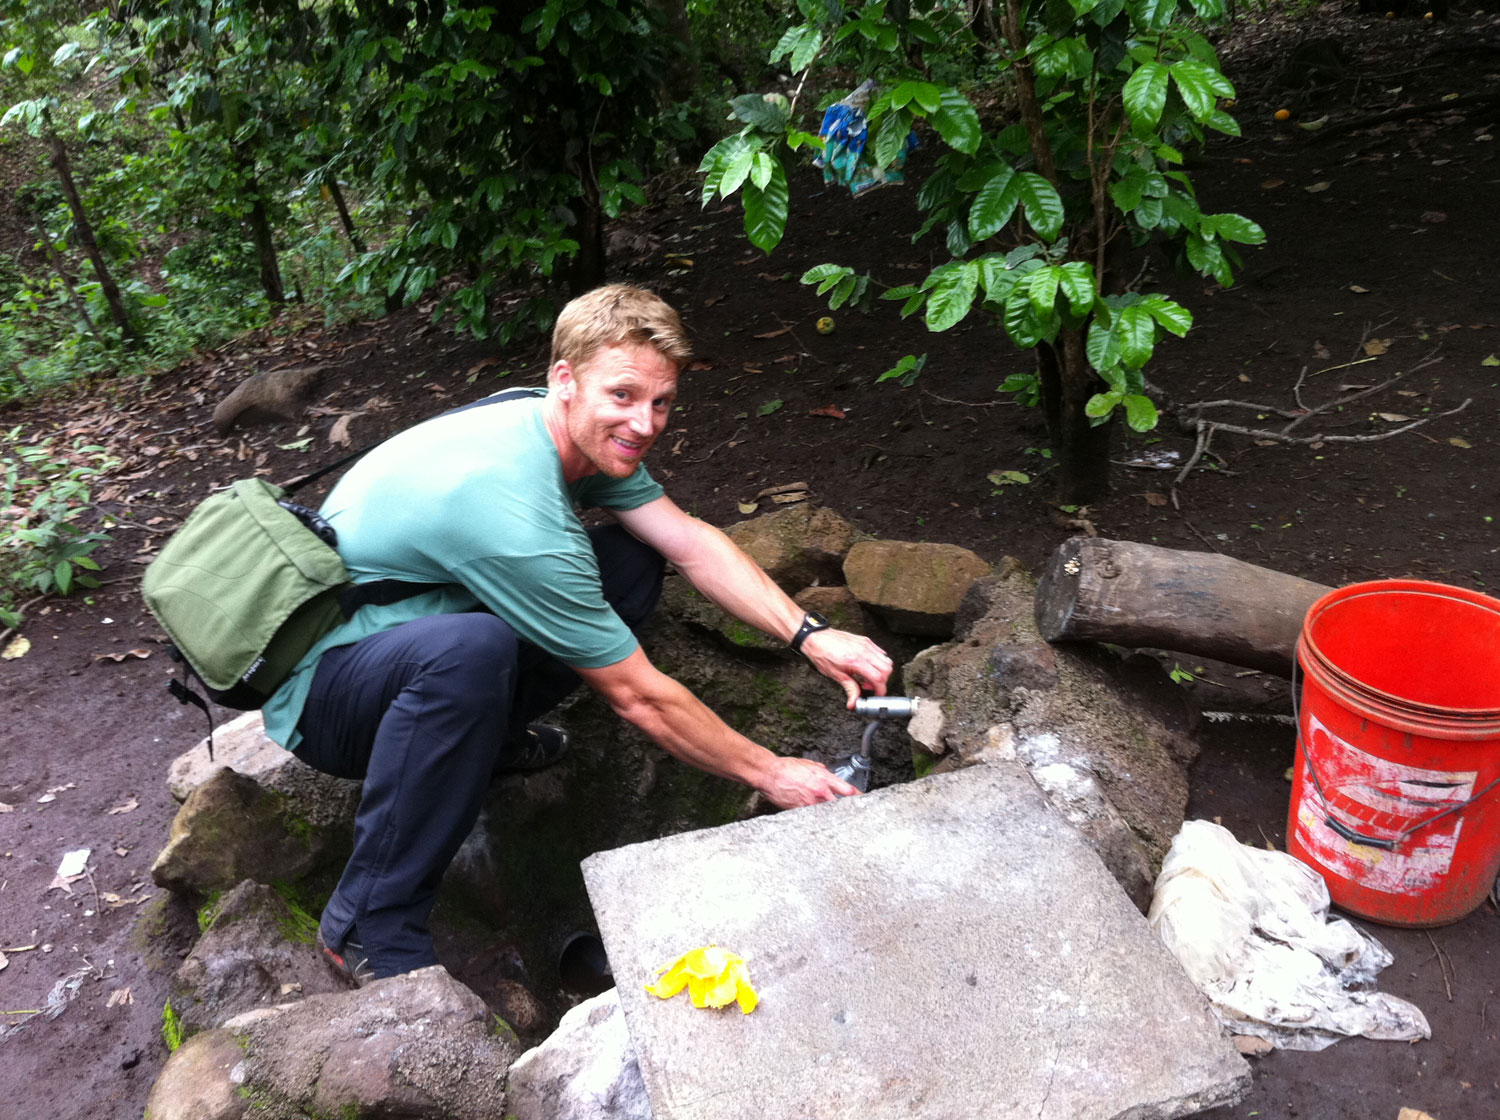 Josiah fills up his bottle from the tap of one of the rainwater harvesting tanks